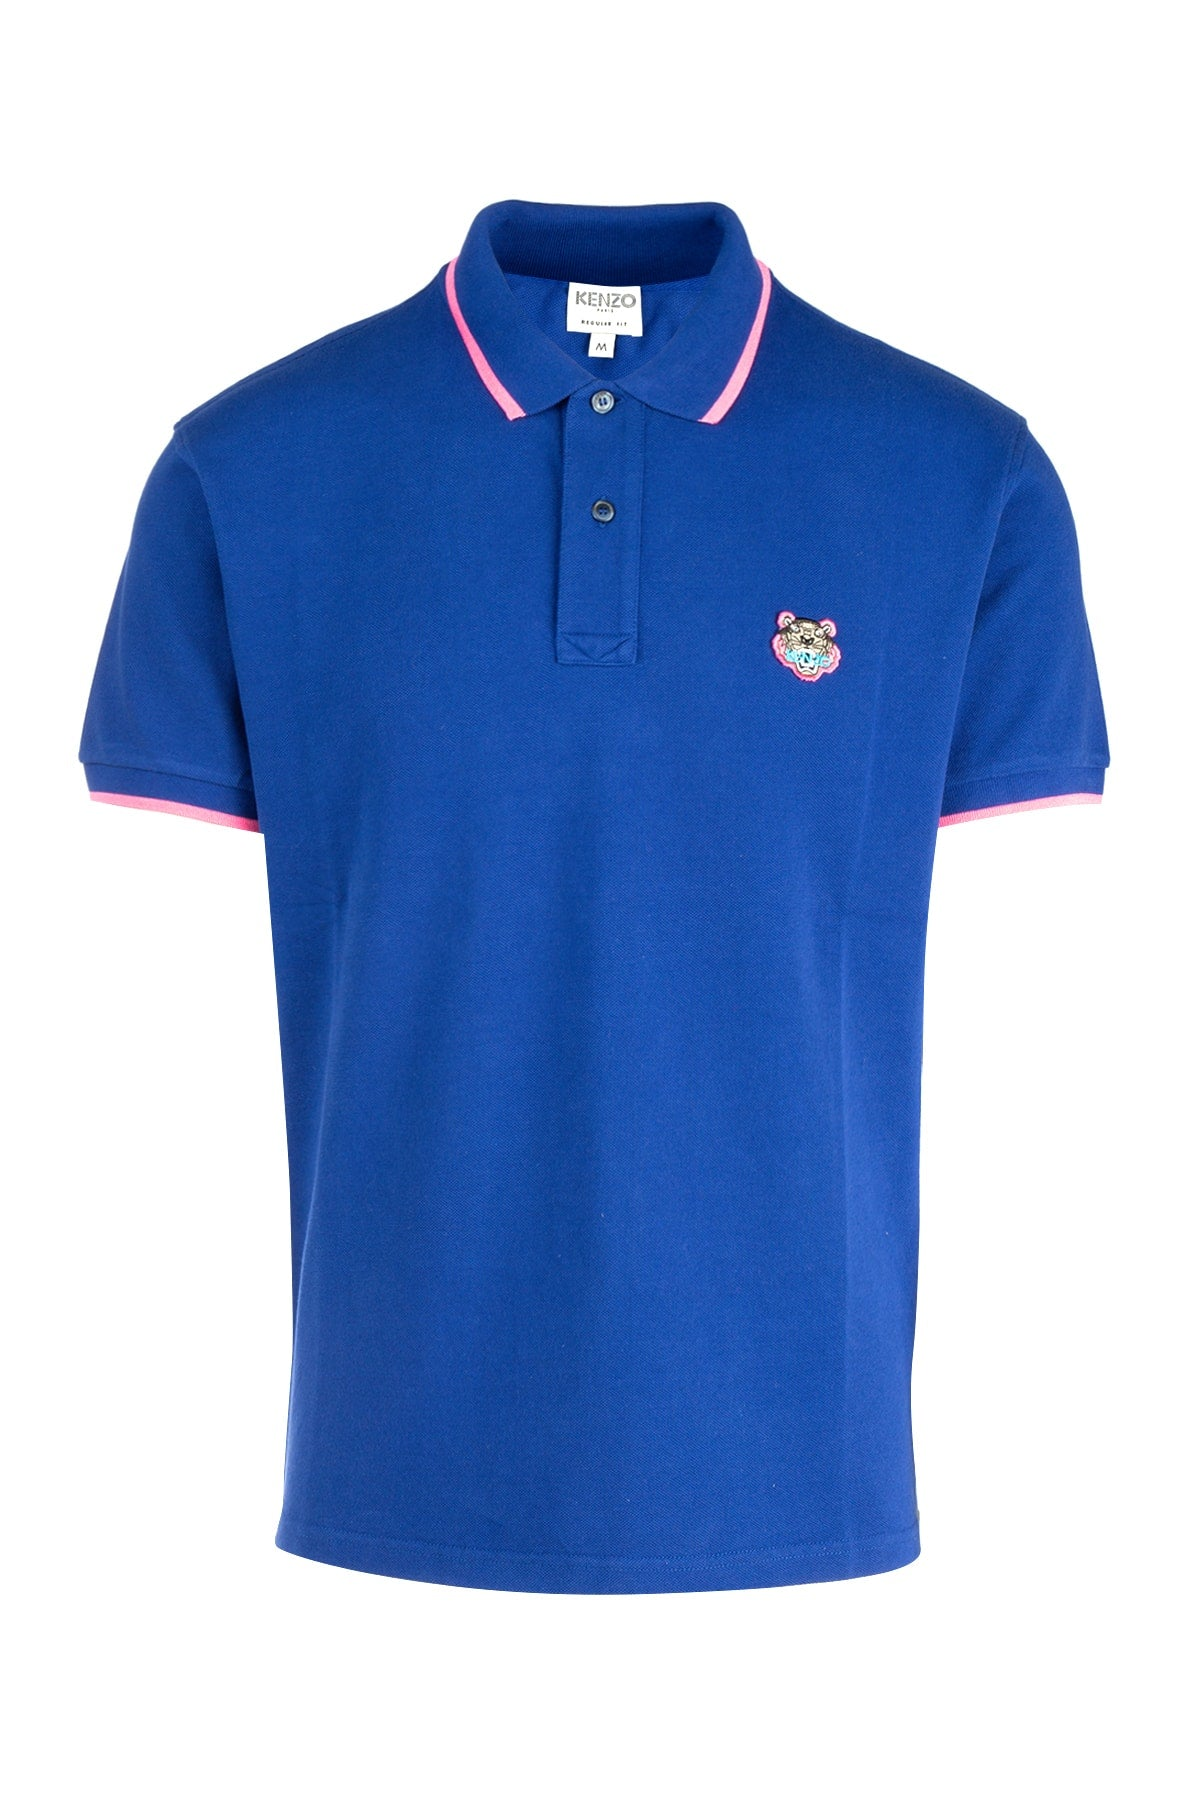 Kenzo Tiger Crest Polo Shirt In Blue